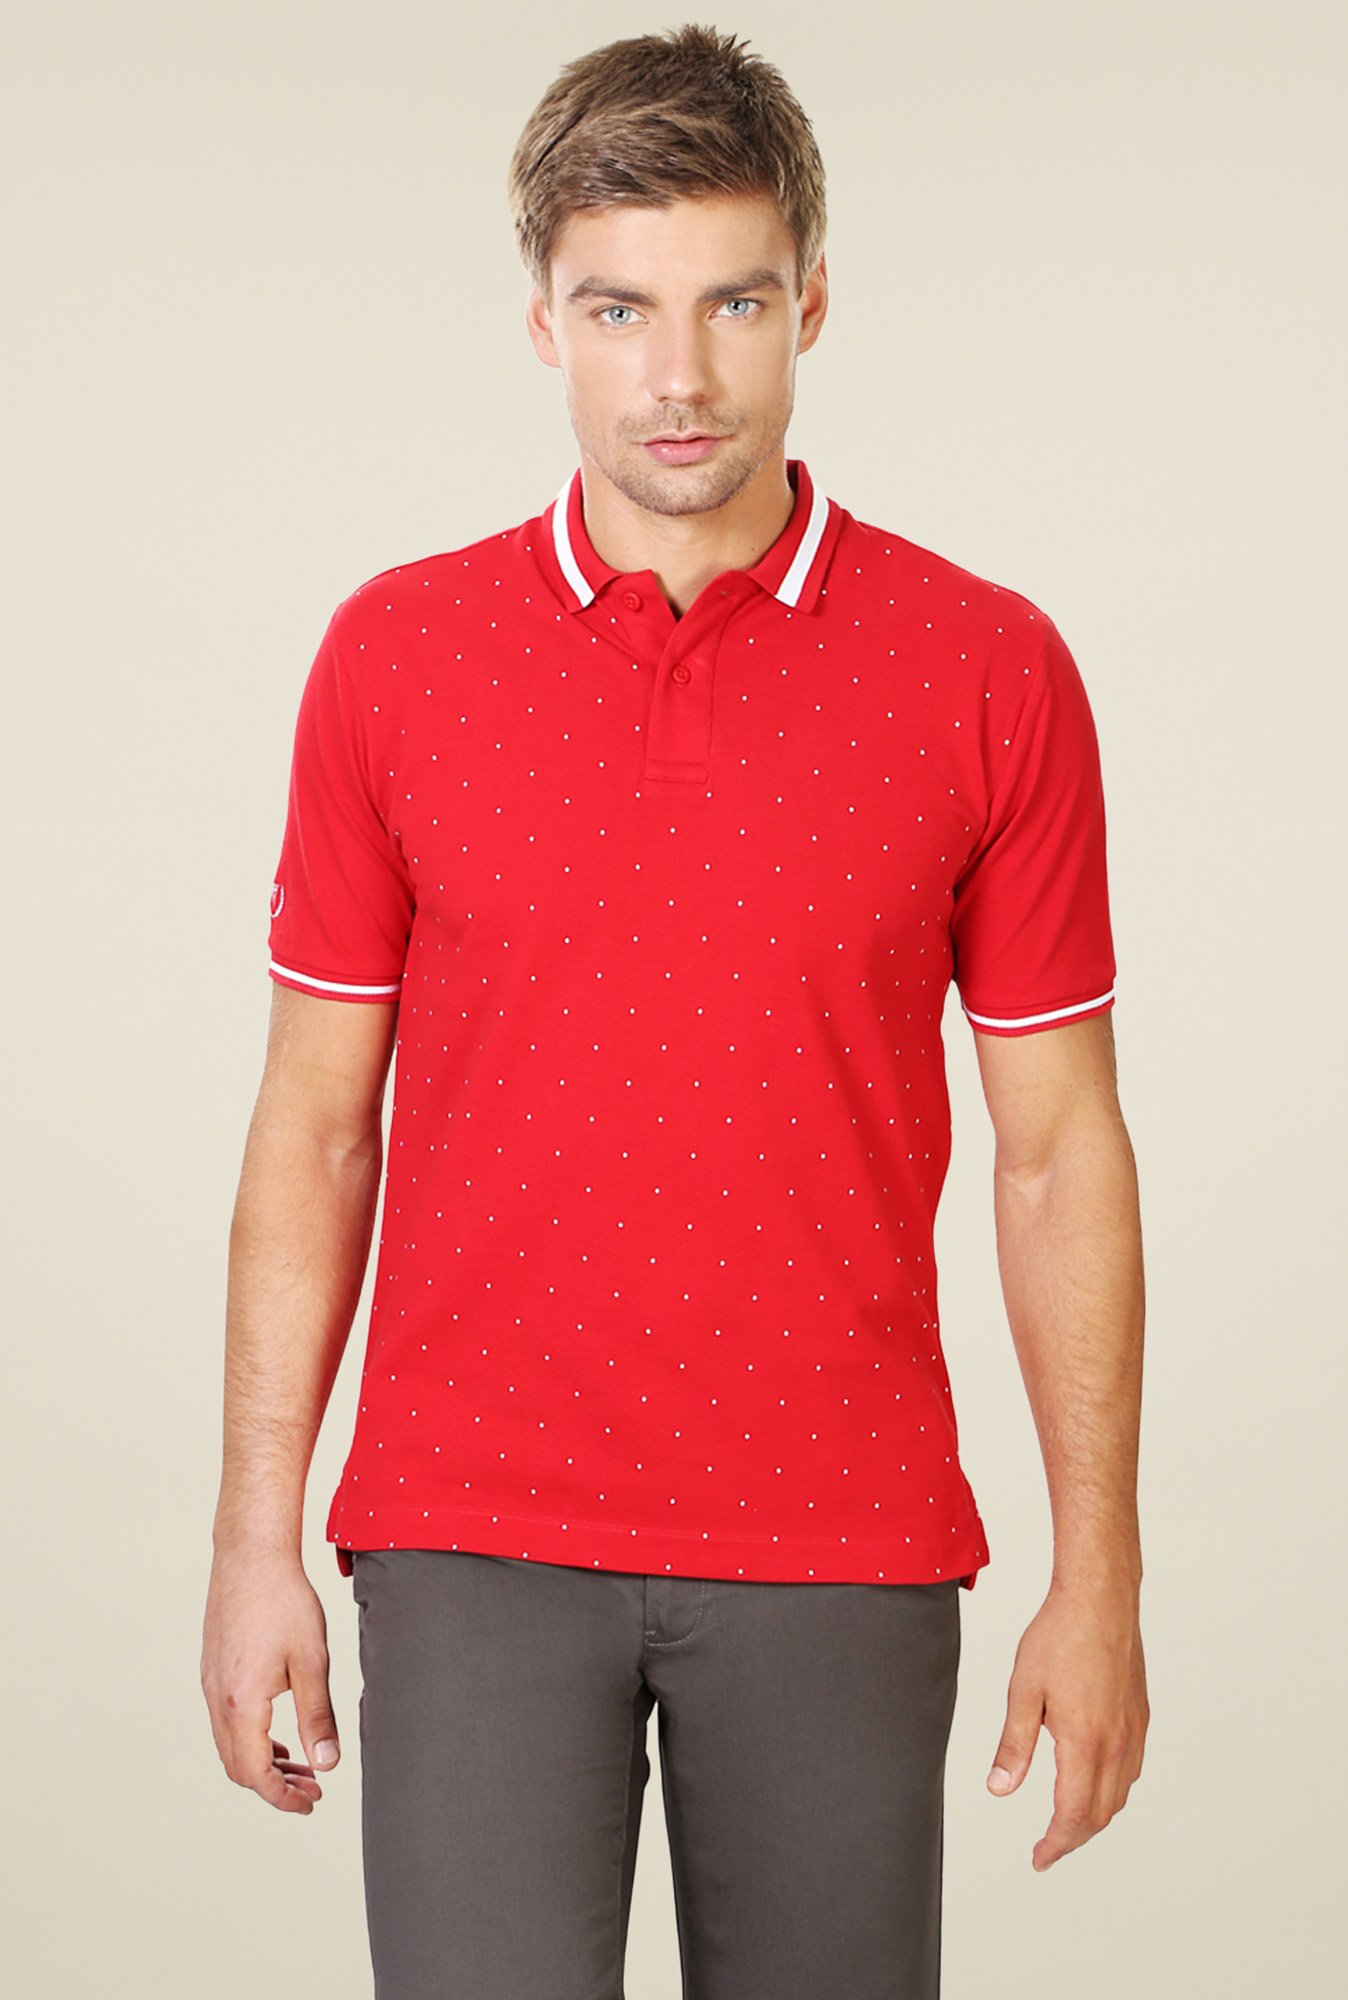 Van Heusen Red Regular Fit Cotton T-Shirt